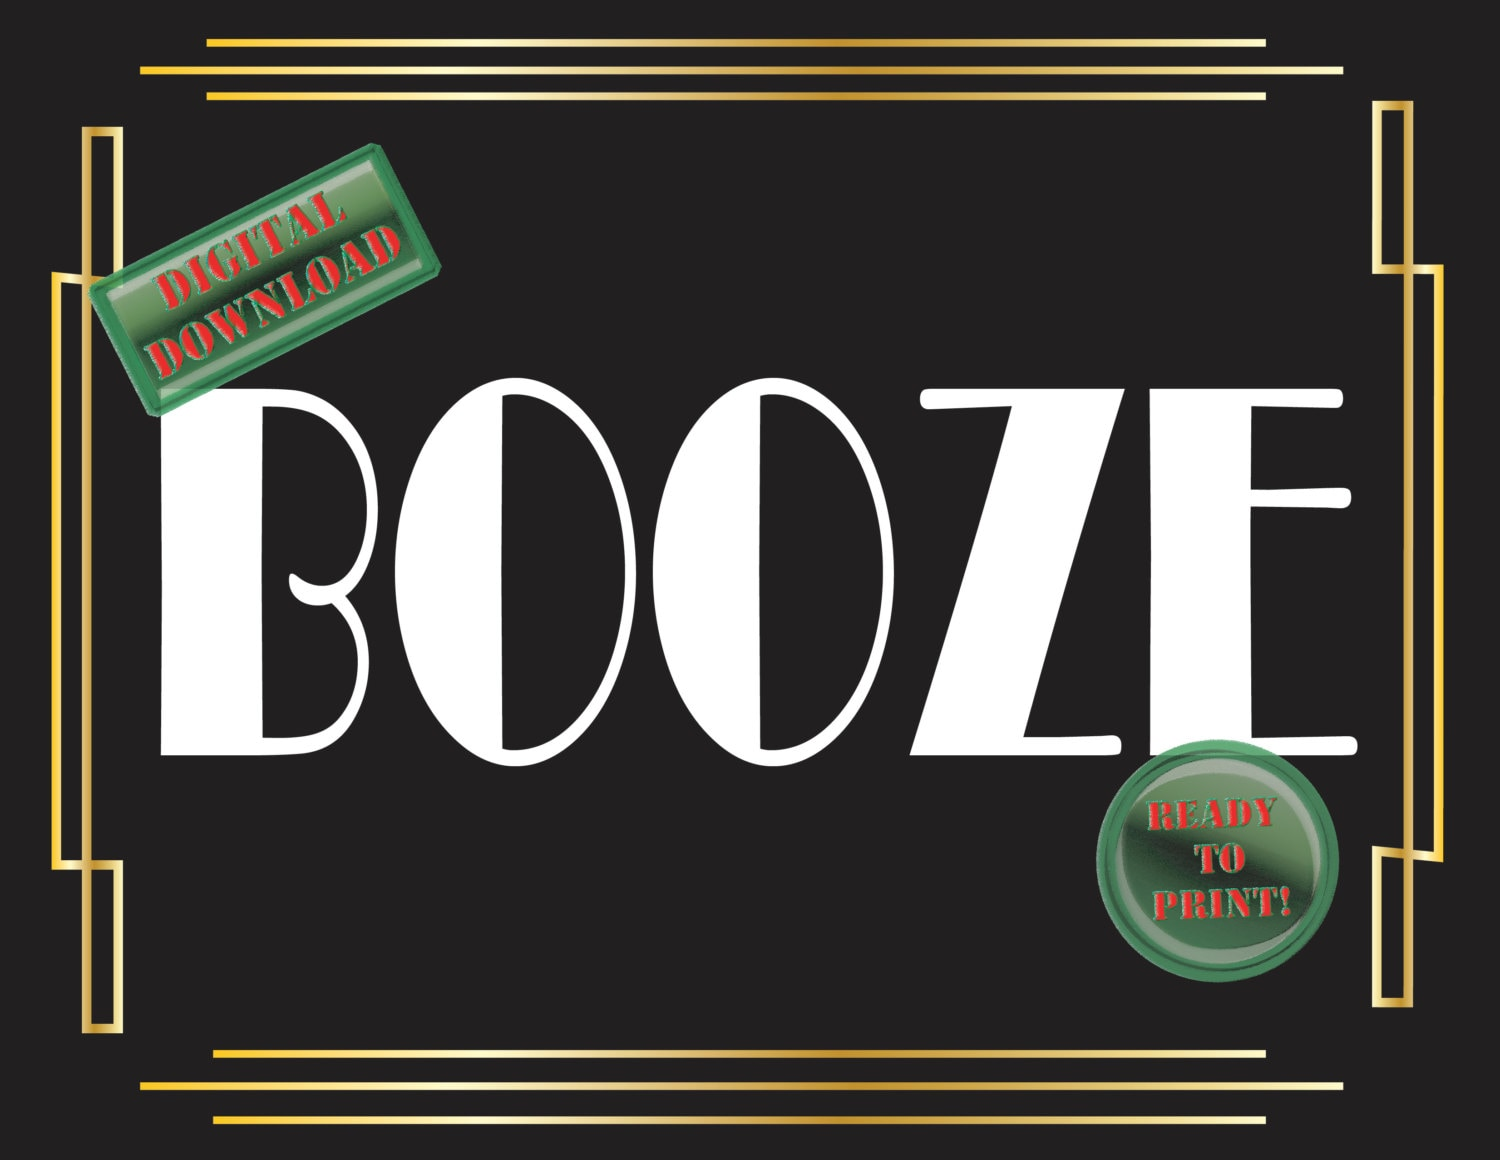 Booze printable bar sign art deco food table sign roaring 20s for Cuisine art deco